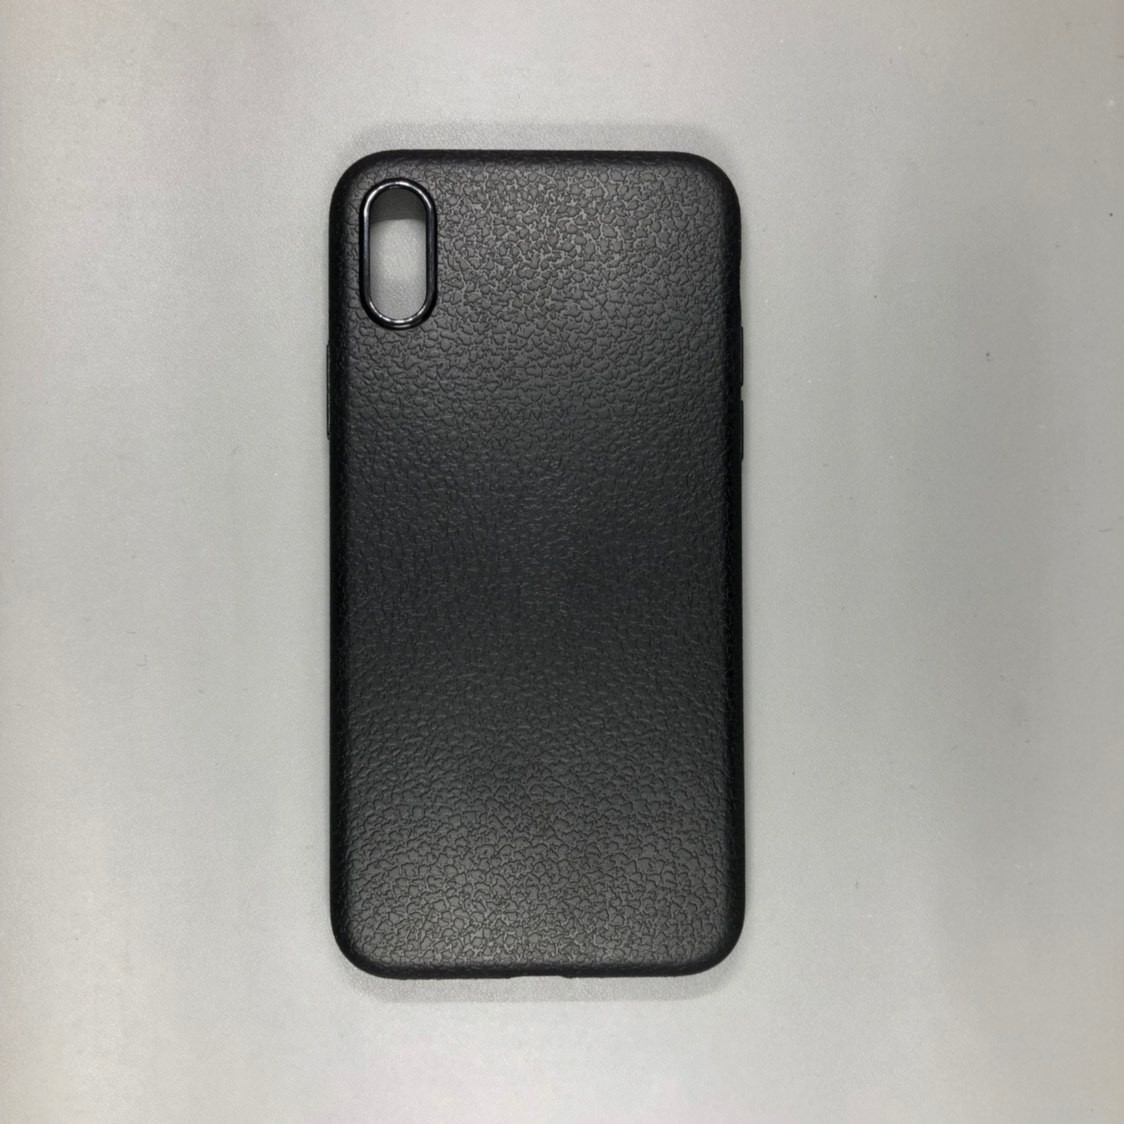 iPhone X Plastic Black